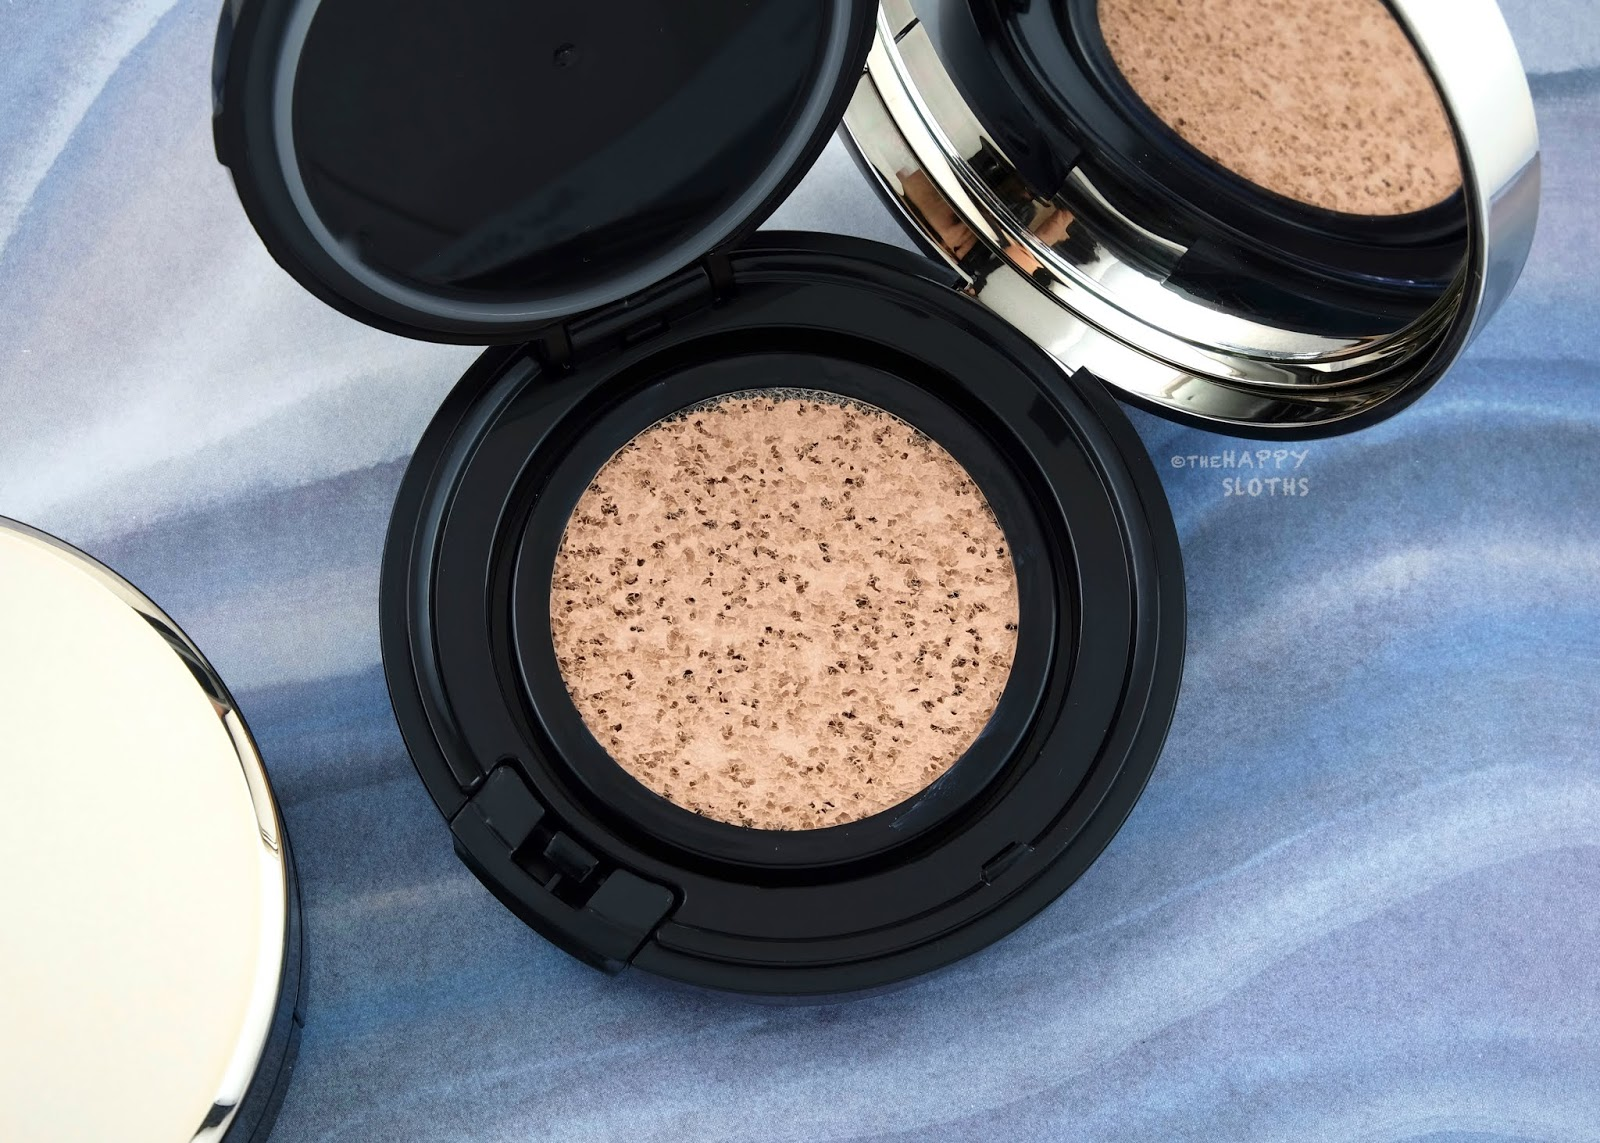 Clé de Peau Beauté | Radiant Cushion Foundation: Review and Swatches